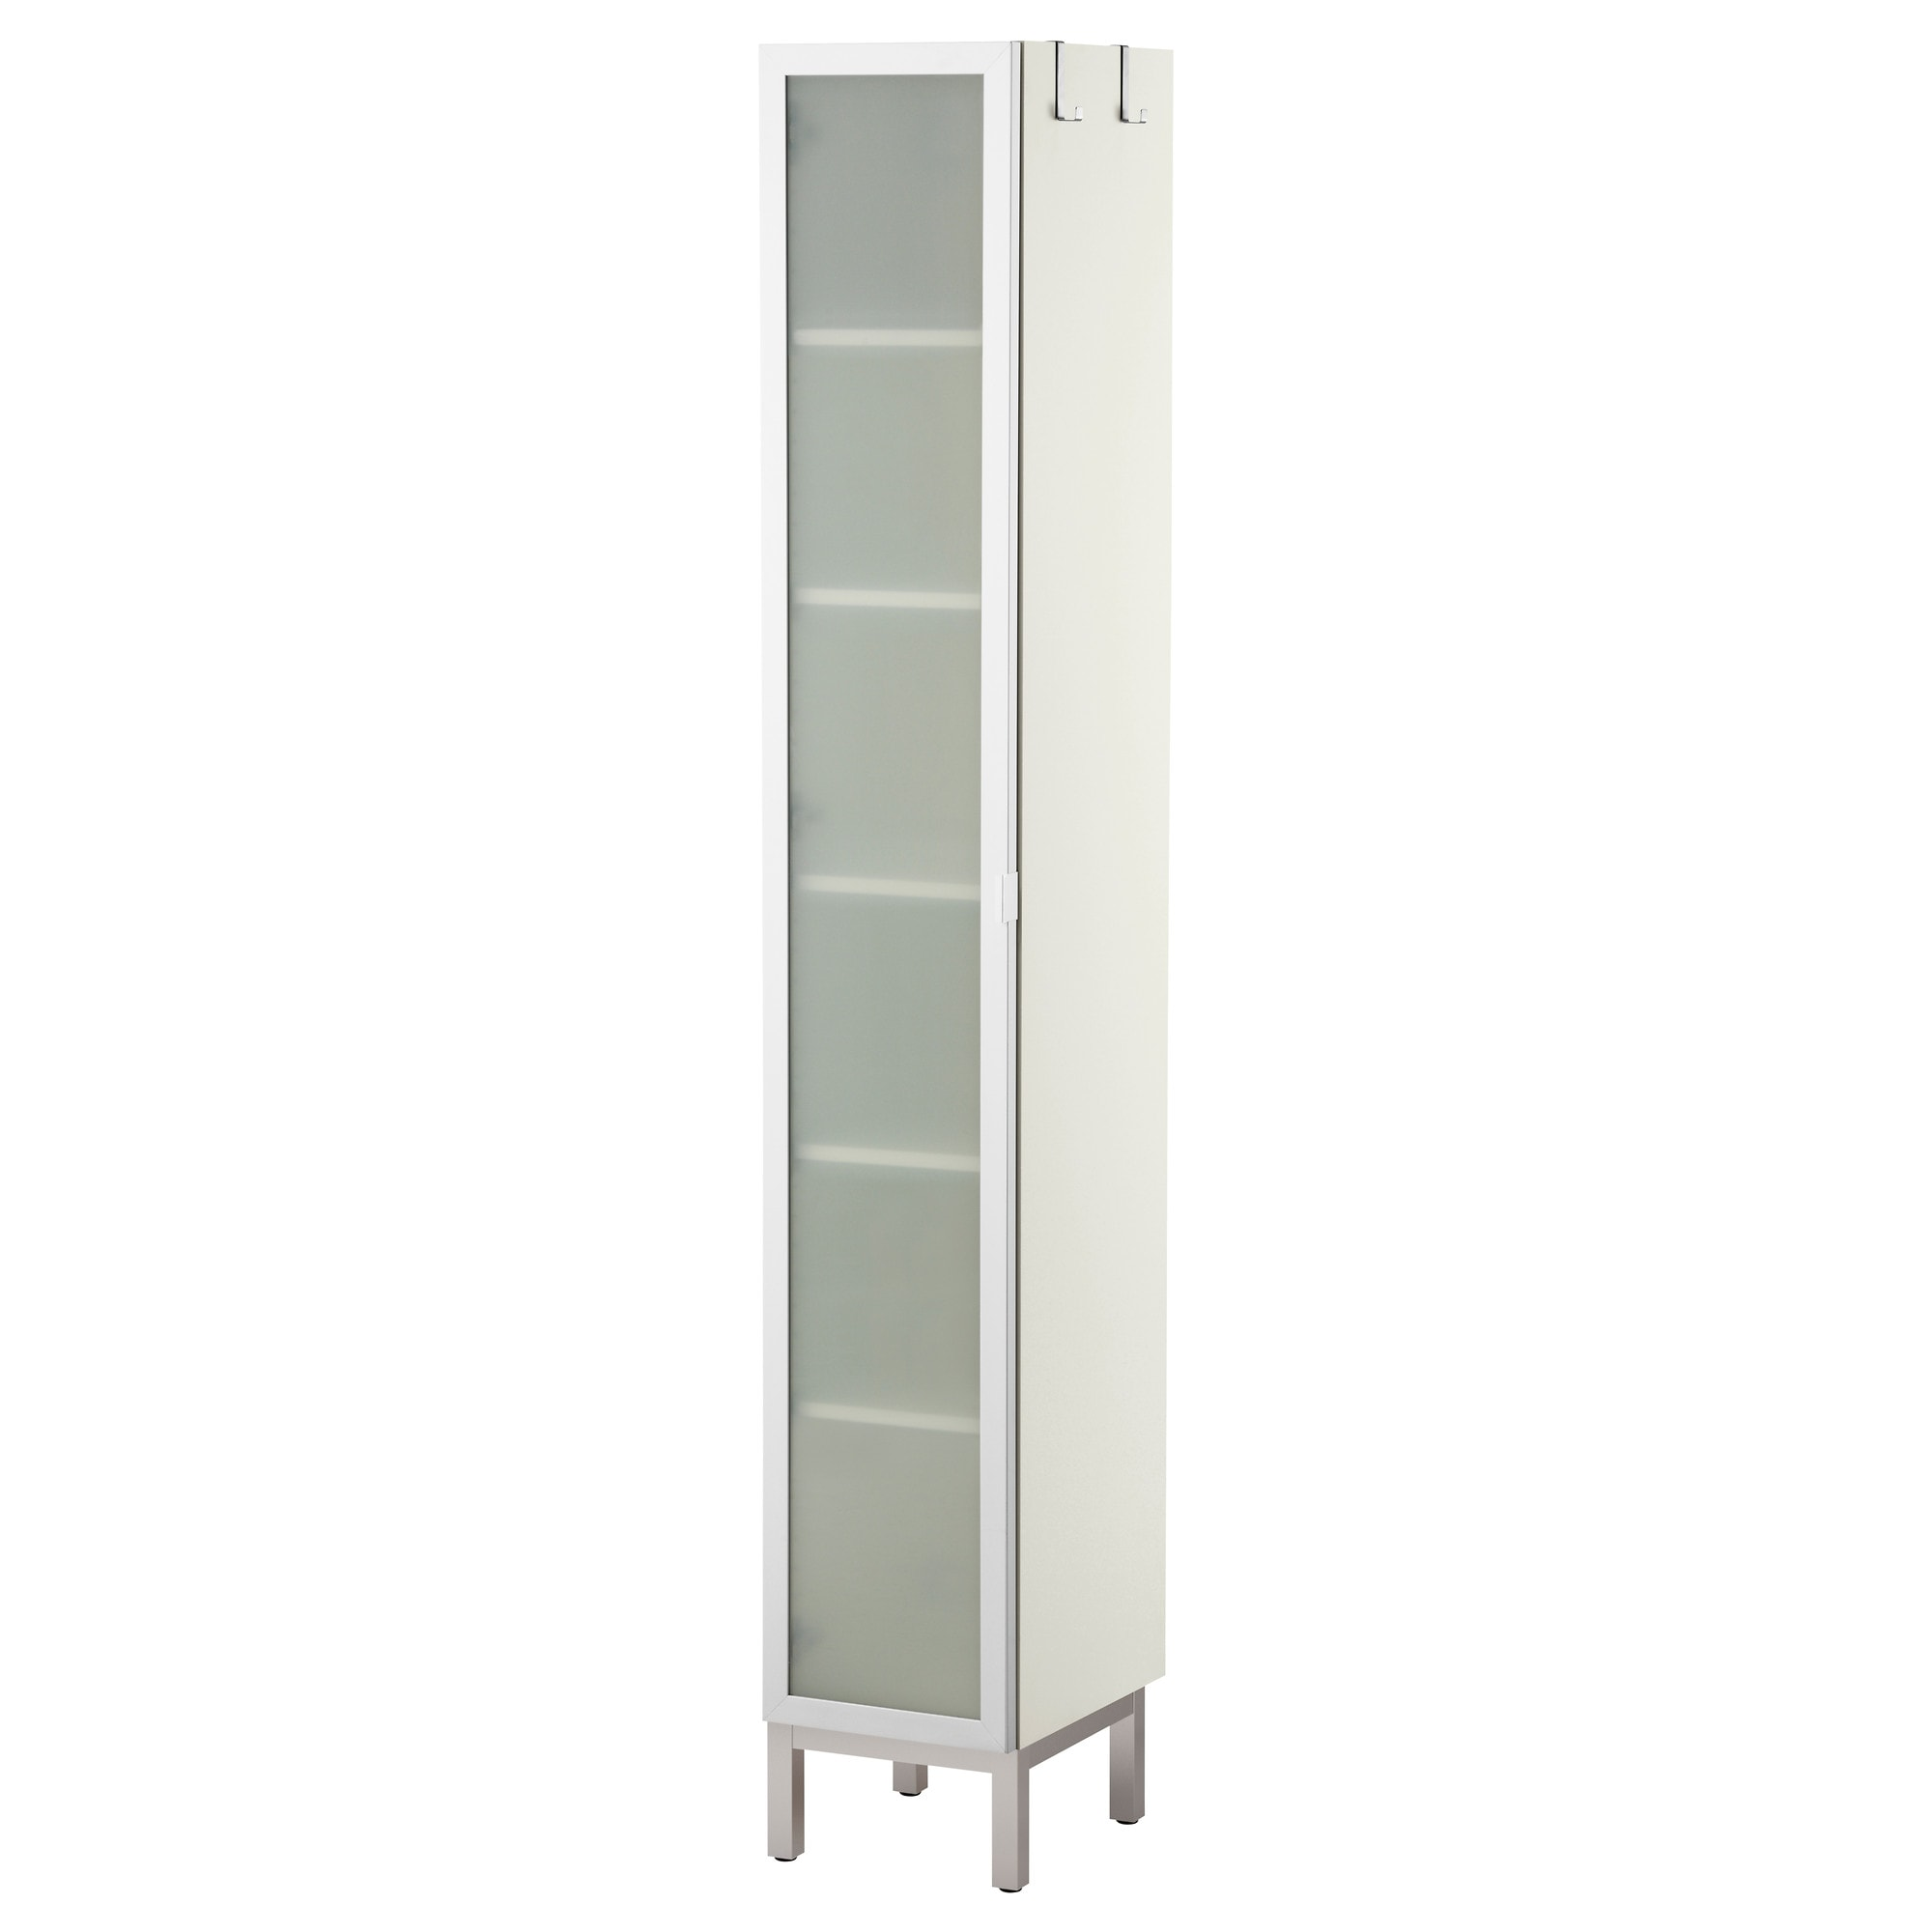 IKEA Bathroom Storage Cabinets